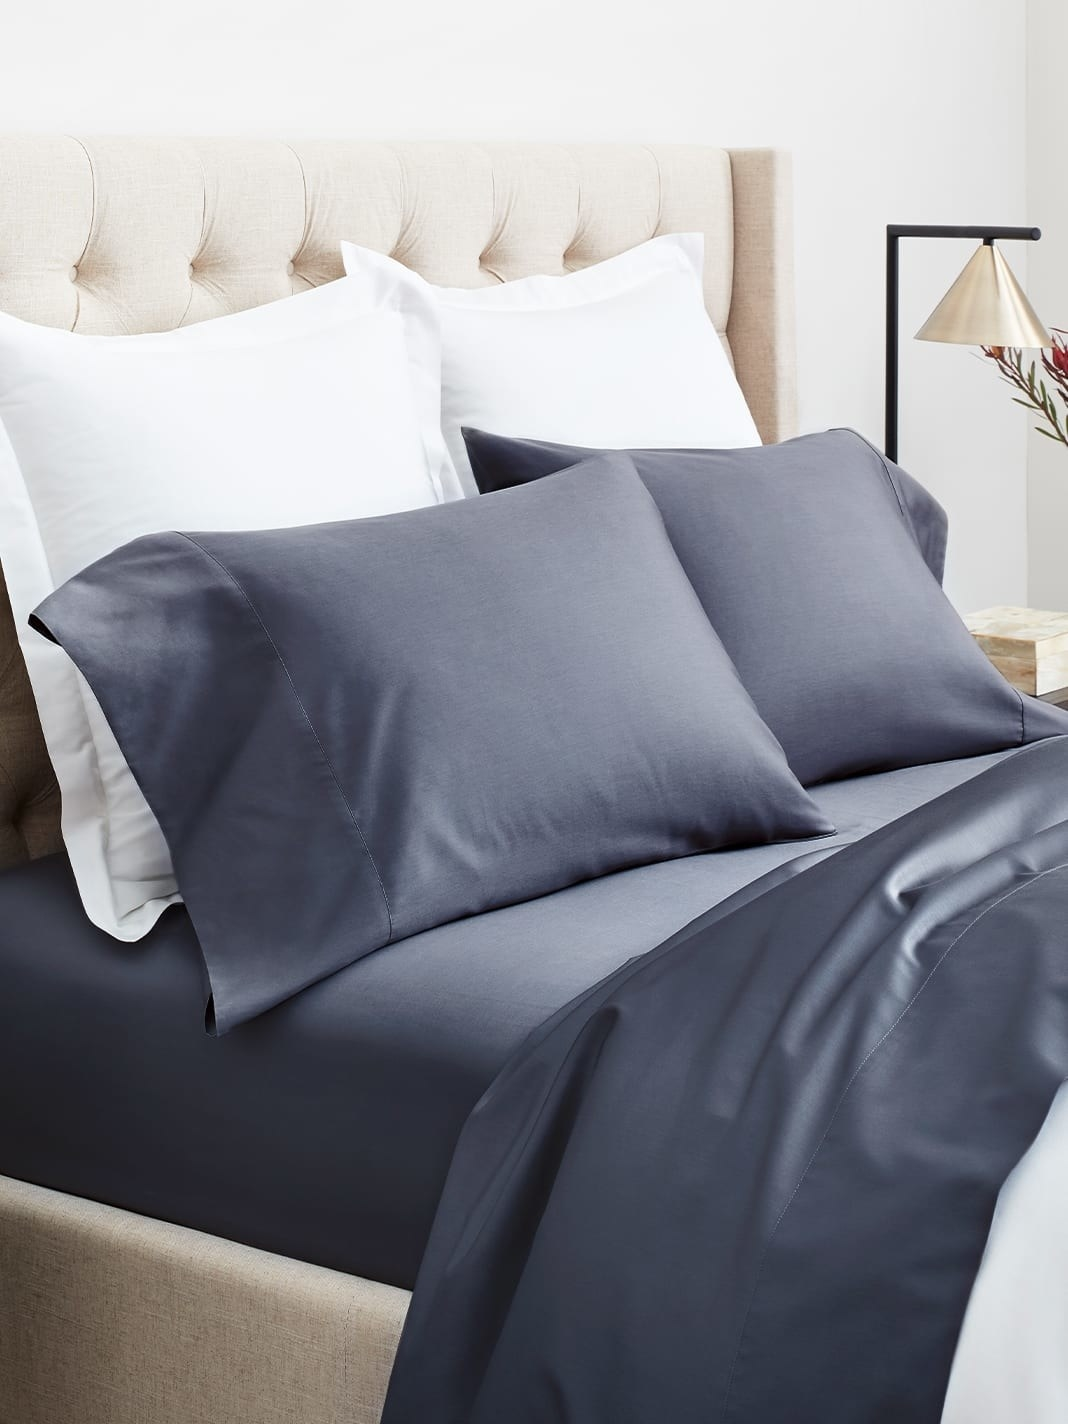 Mineral colored bed sheets and pillow cases